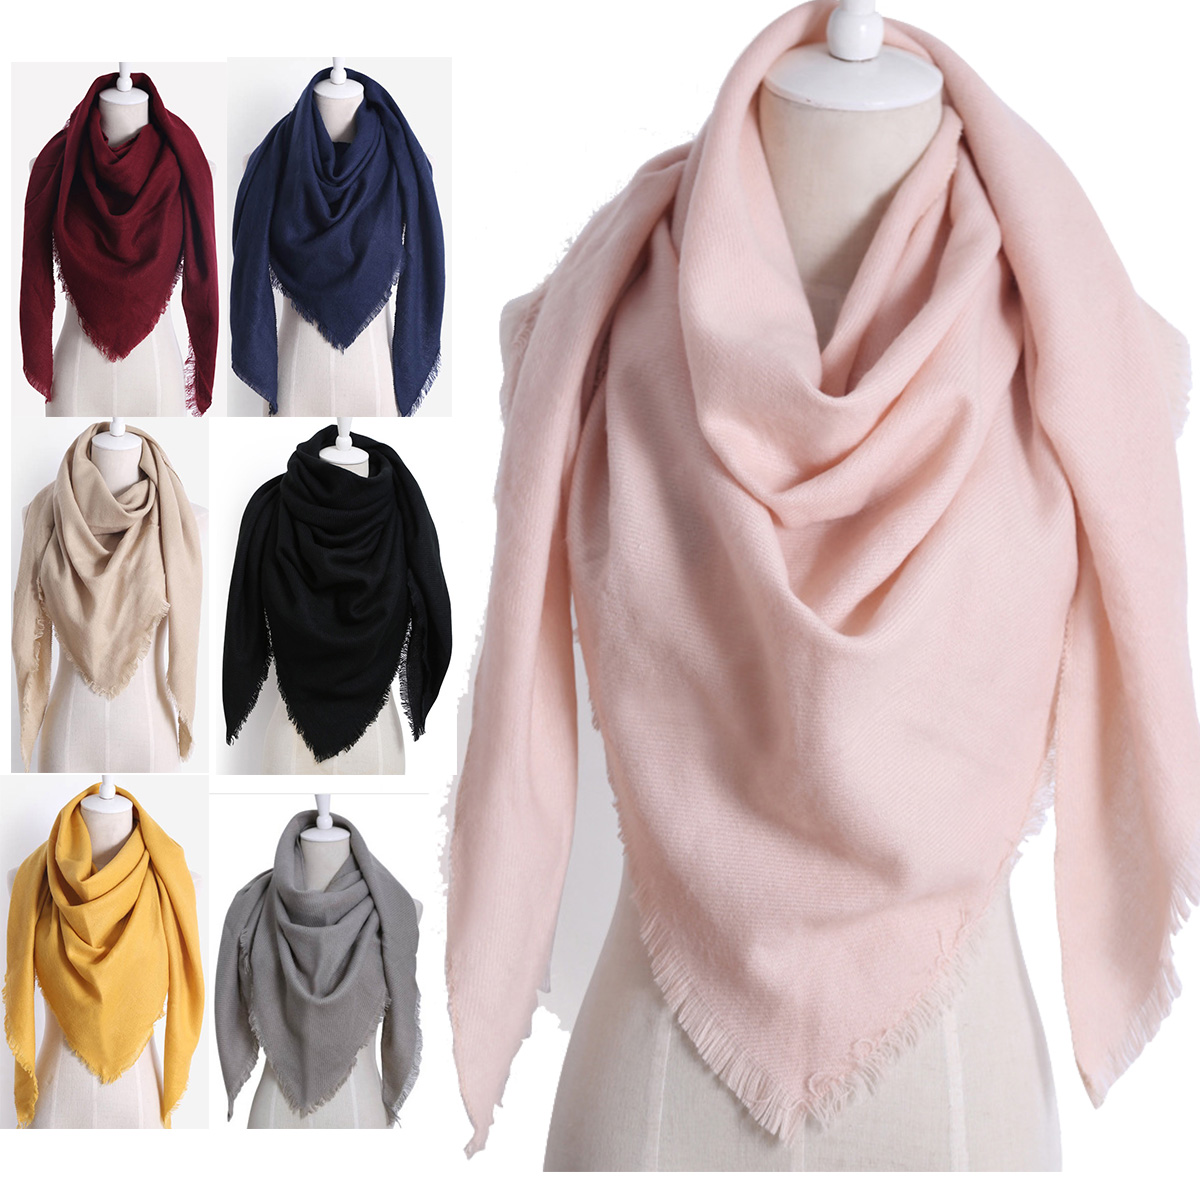 2019 New Fashion Winter Warm Triangle Scarf For Women Pashmina Shawl Cashmere Plaid Scarves Blanket  Shawls Scarf Female Stole